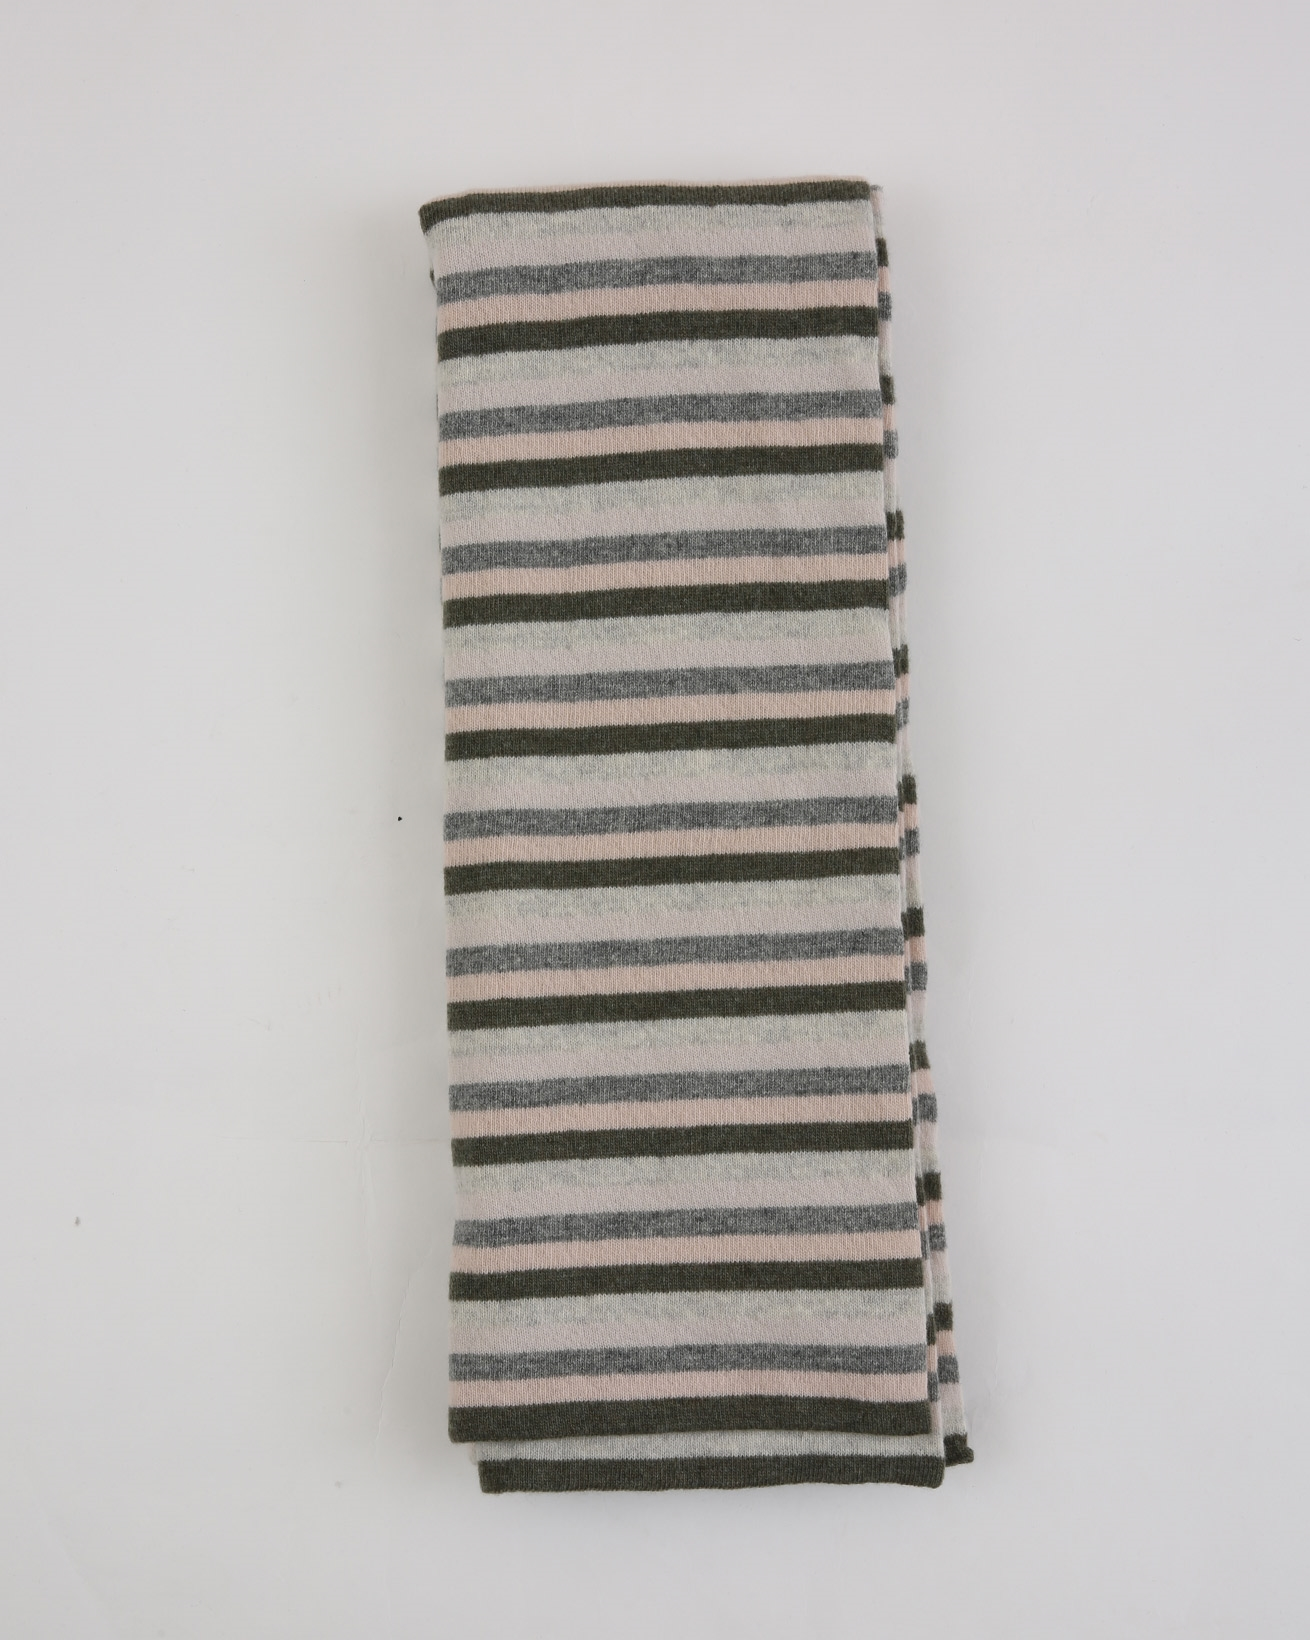 Lambswool Striped Scarf - One Size - Olive/Peony Stripe - 1880